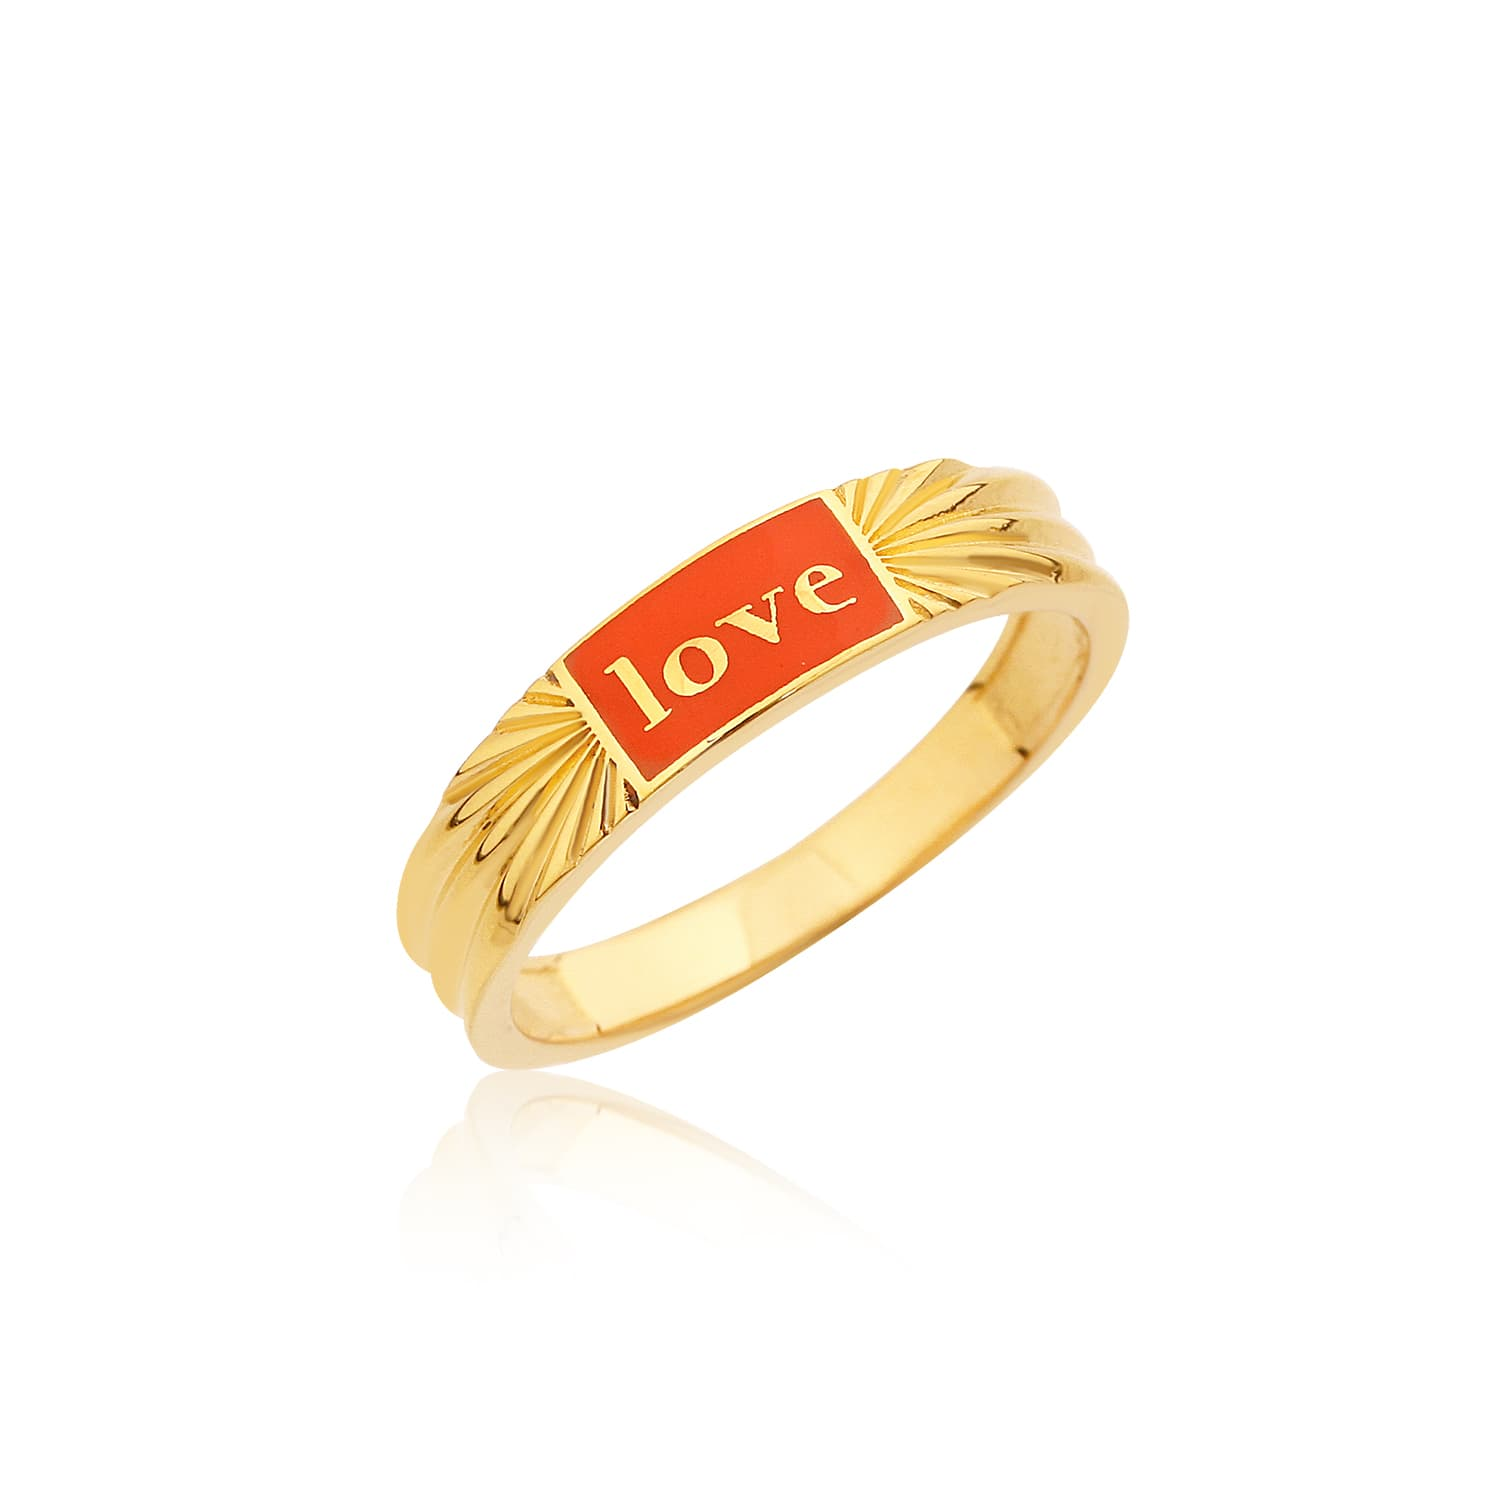 Real gold plated enamel ring models on silver